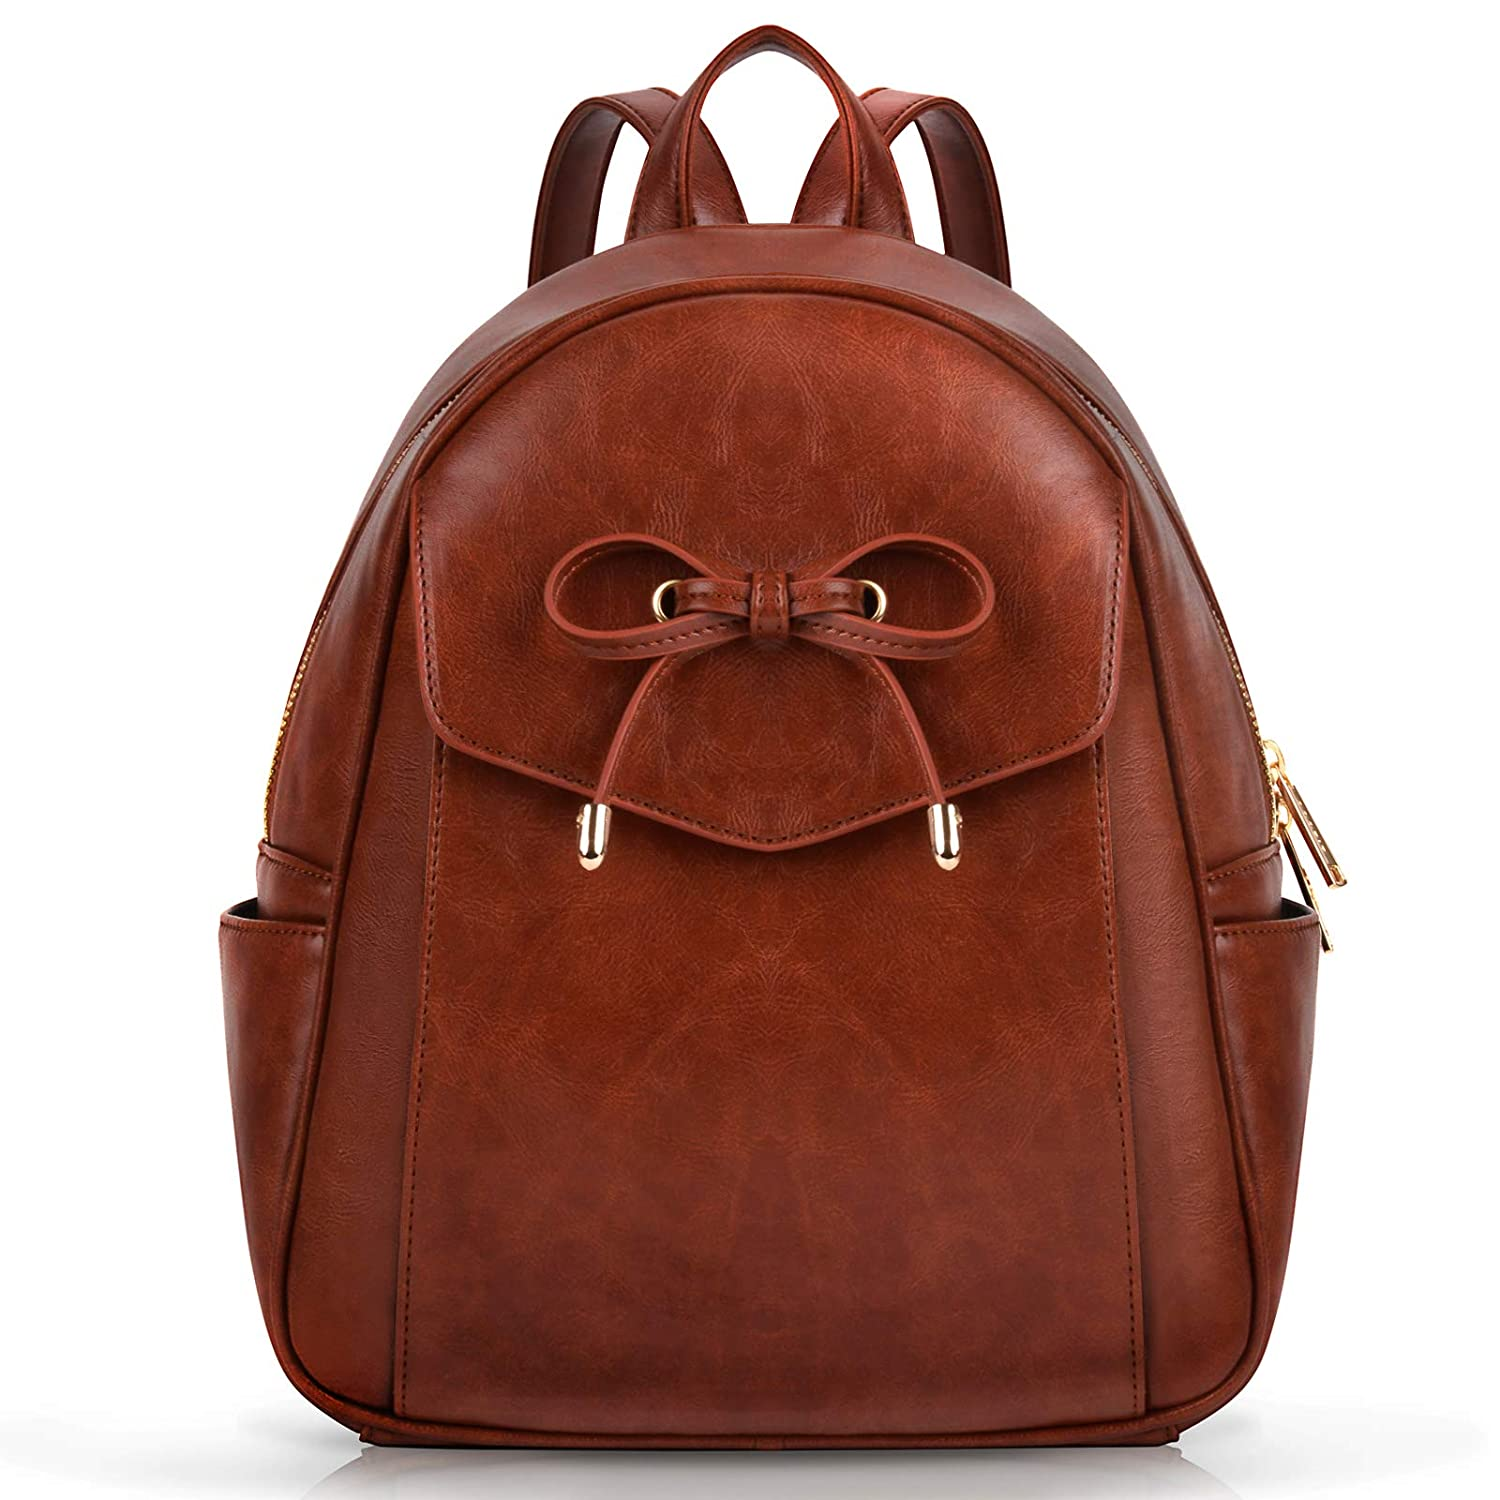 c71375d32 Backpack Womens, COOFIT Small Backpacks for Women Leather Backpack Ladies  Rucksack School Bags Vintage Backpacks for Girls: Amazon.co.uk: Luggage